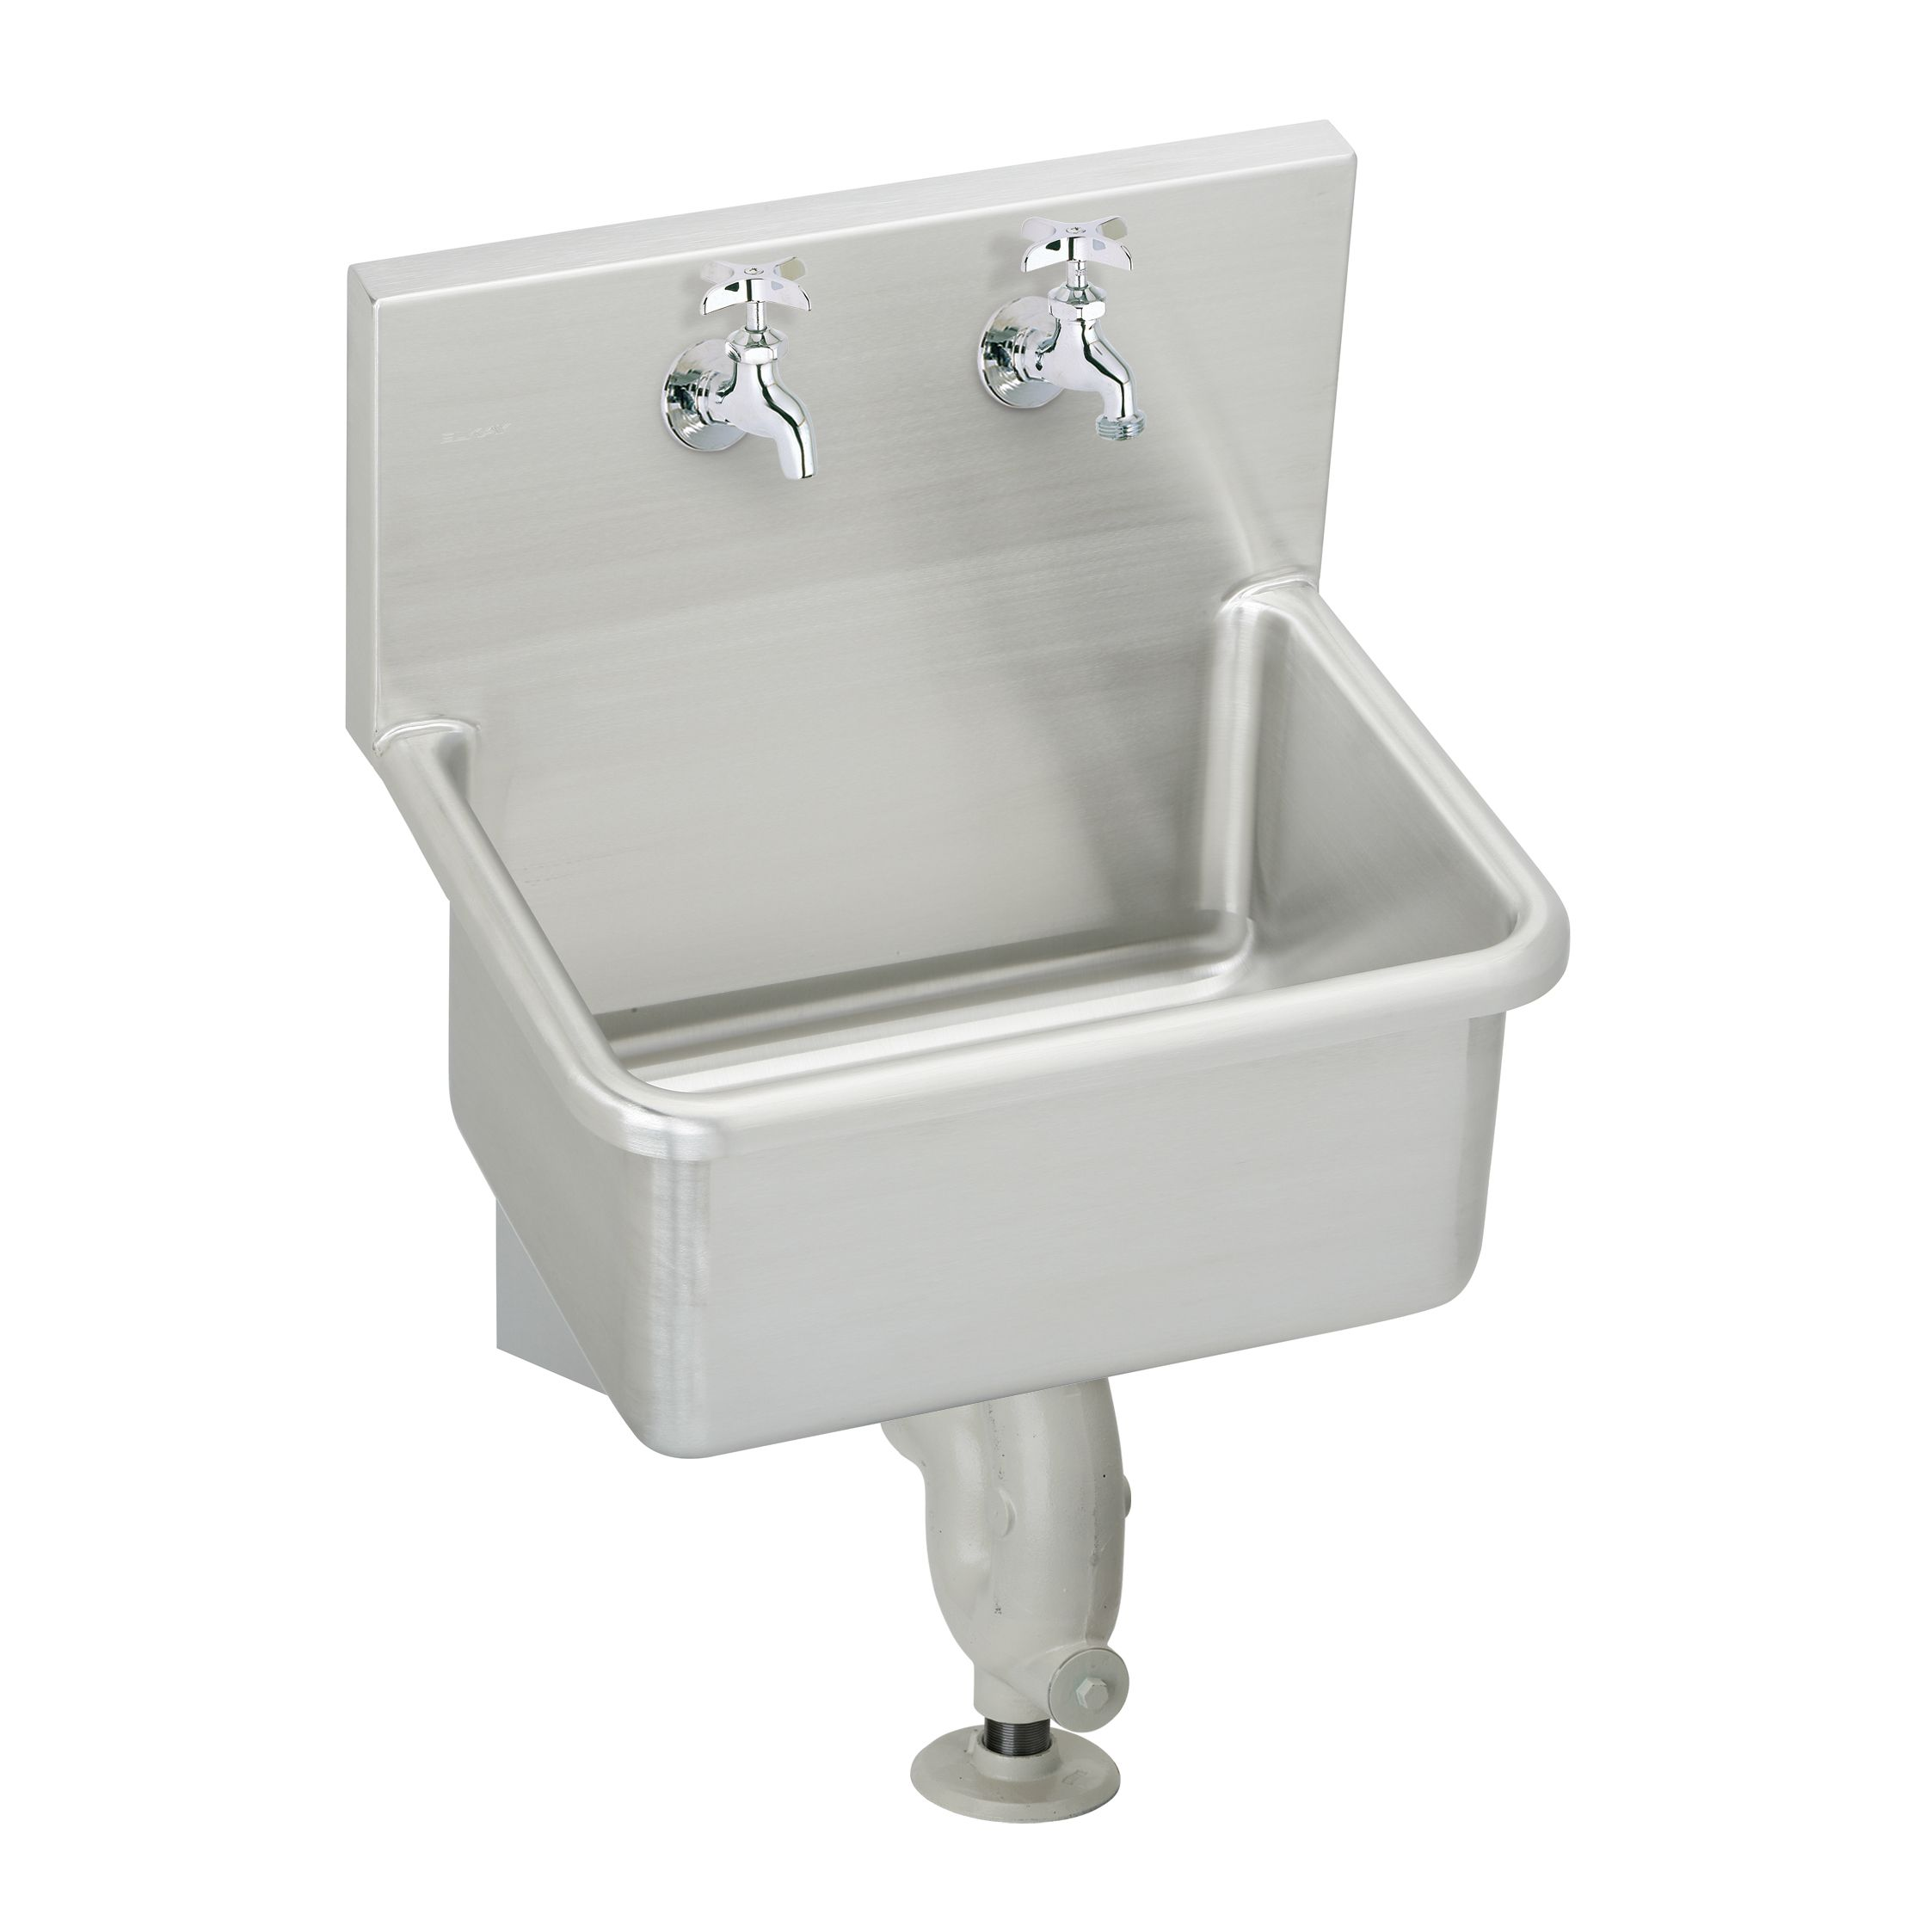 10 Easy Pieces Wall Mount Utility Sinks Sink Utility Sink